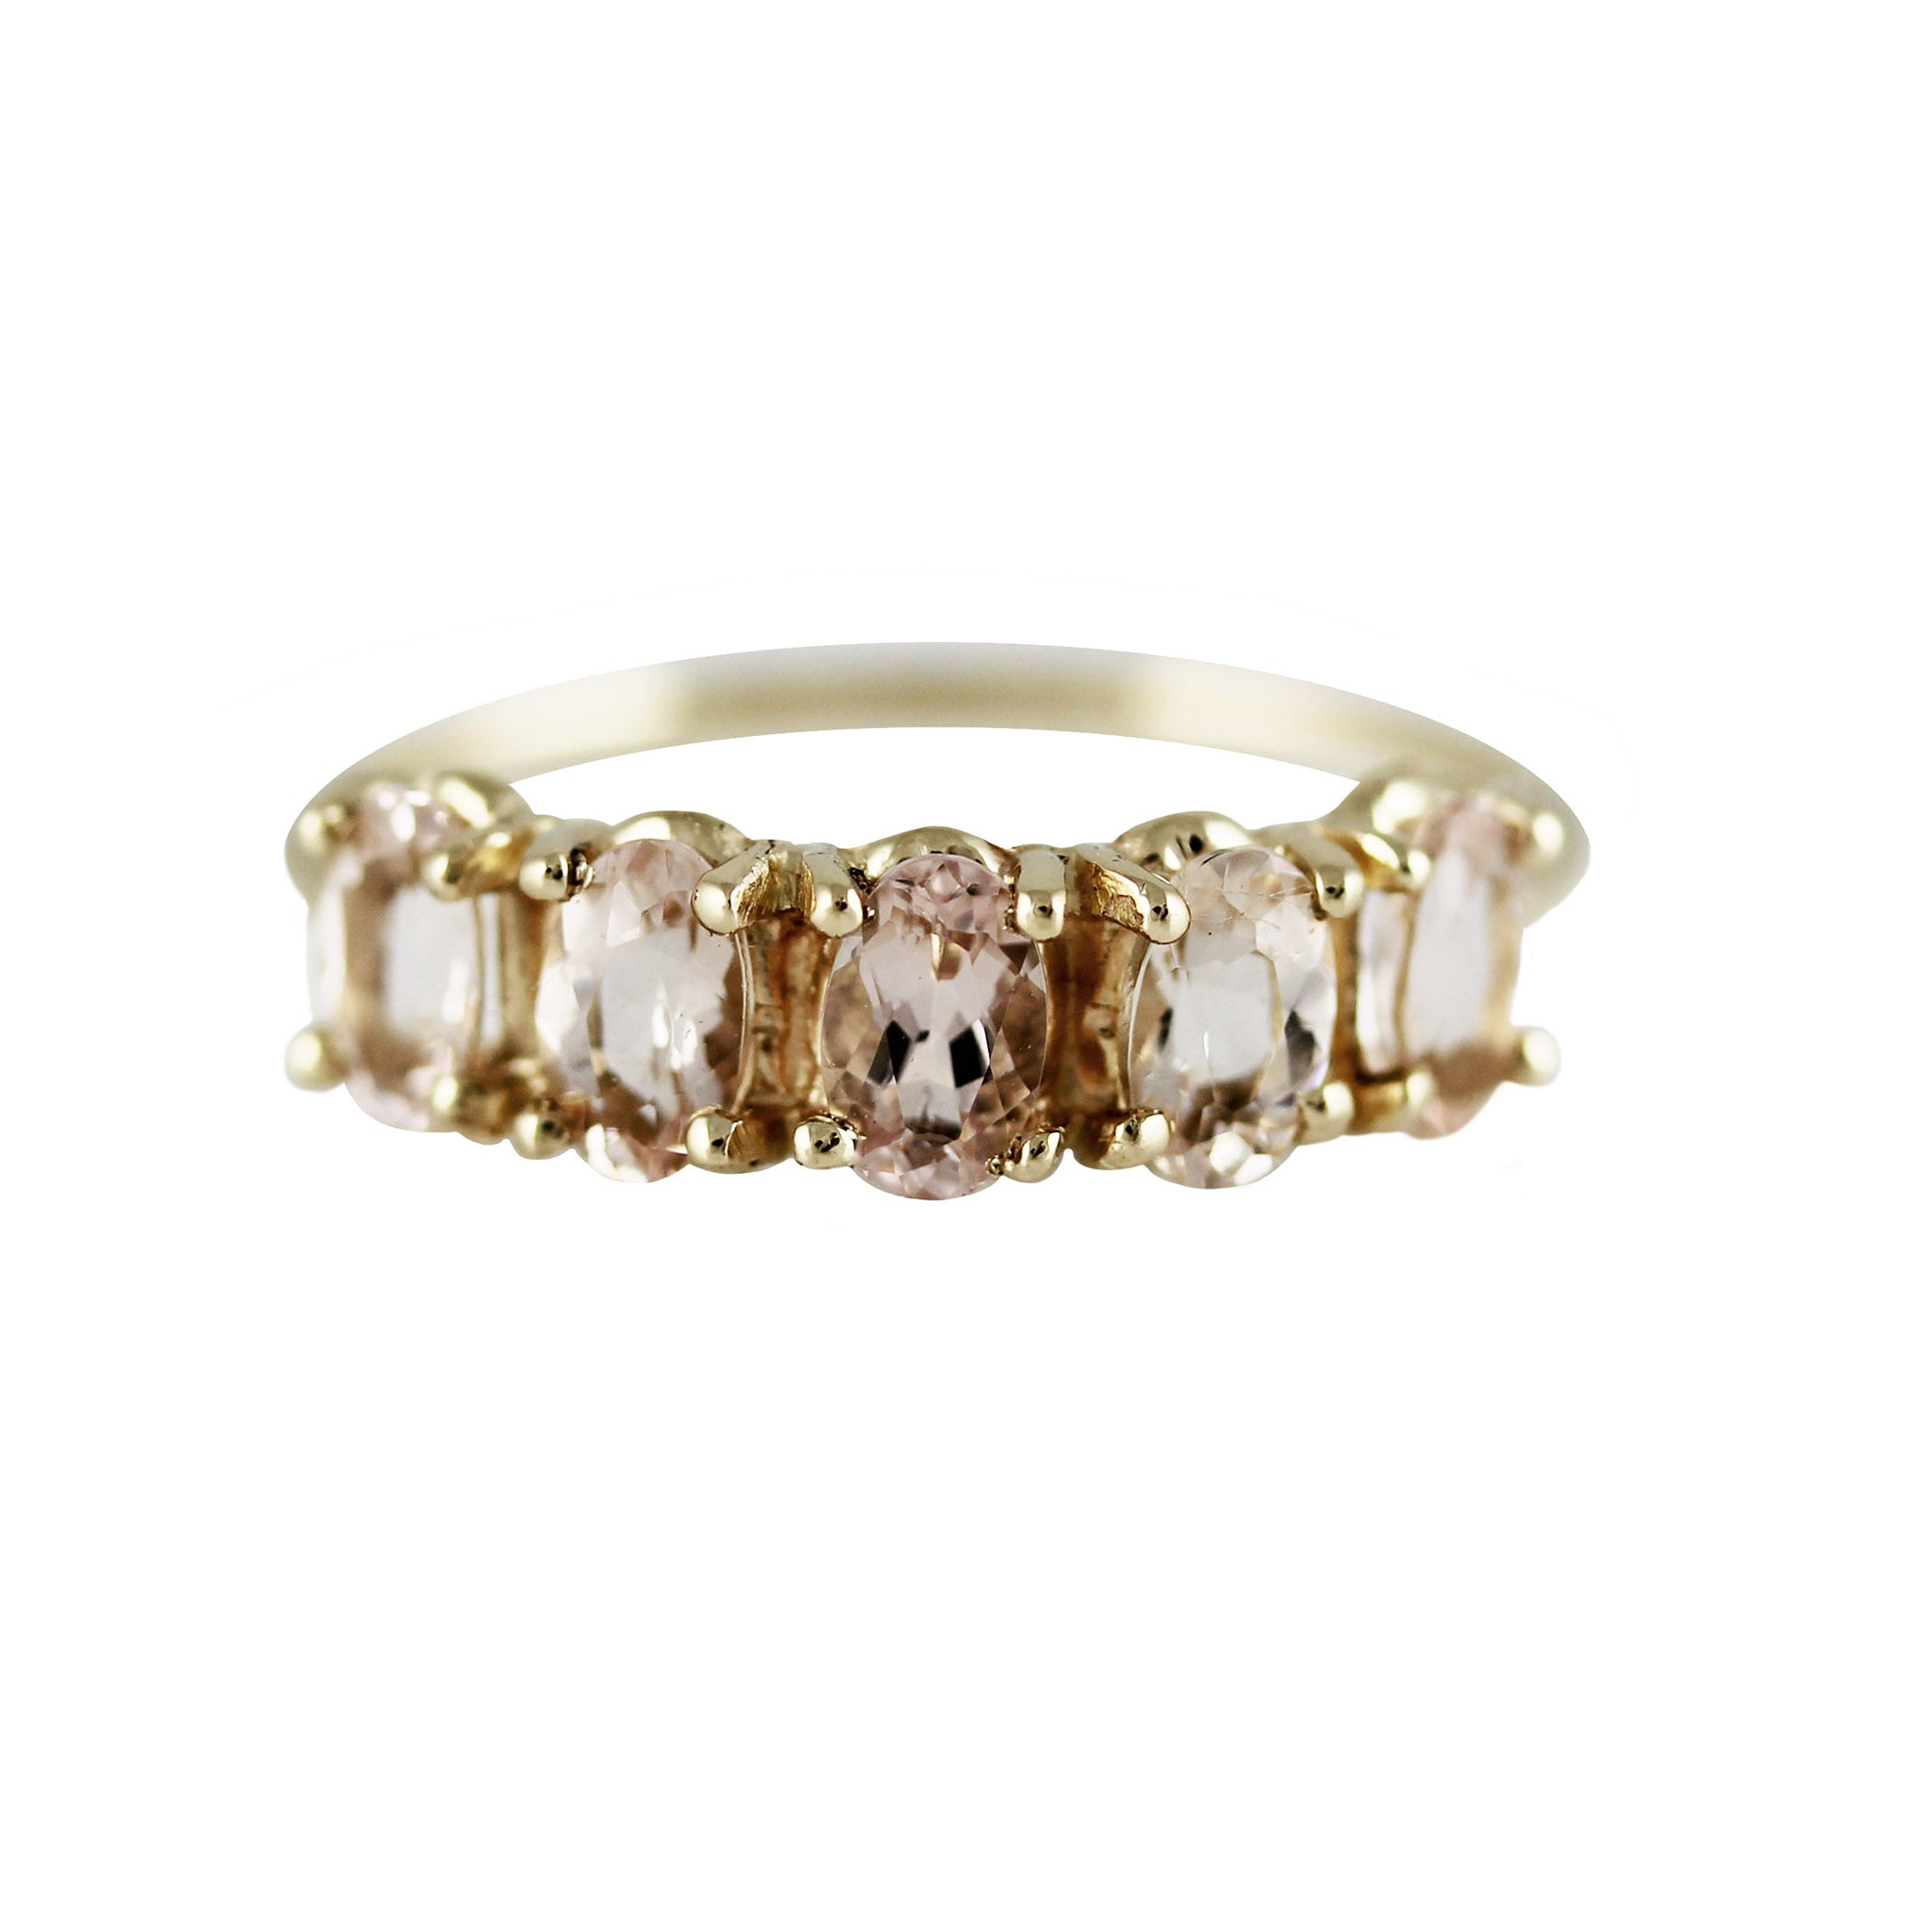 5 OVAL MORGANITE RING